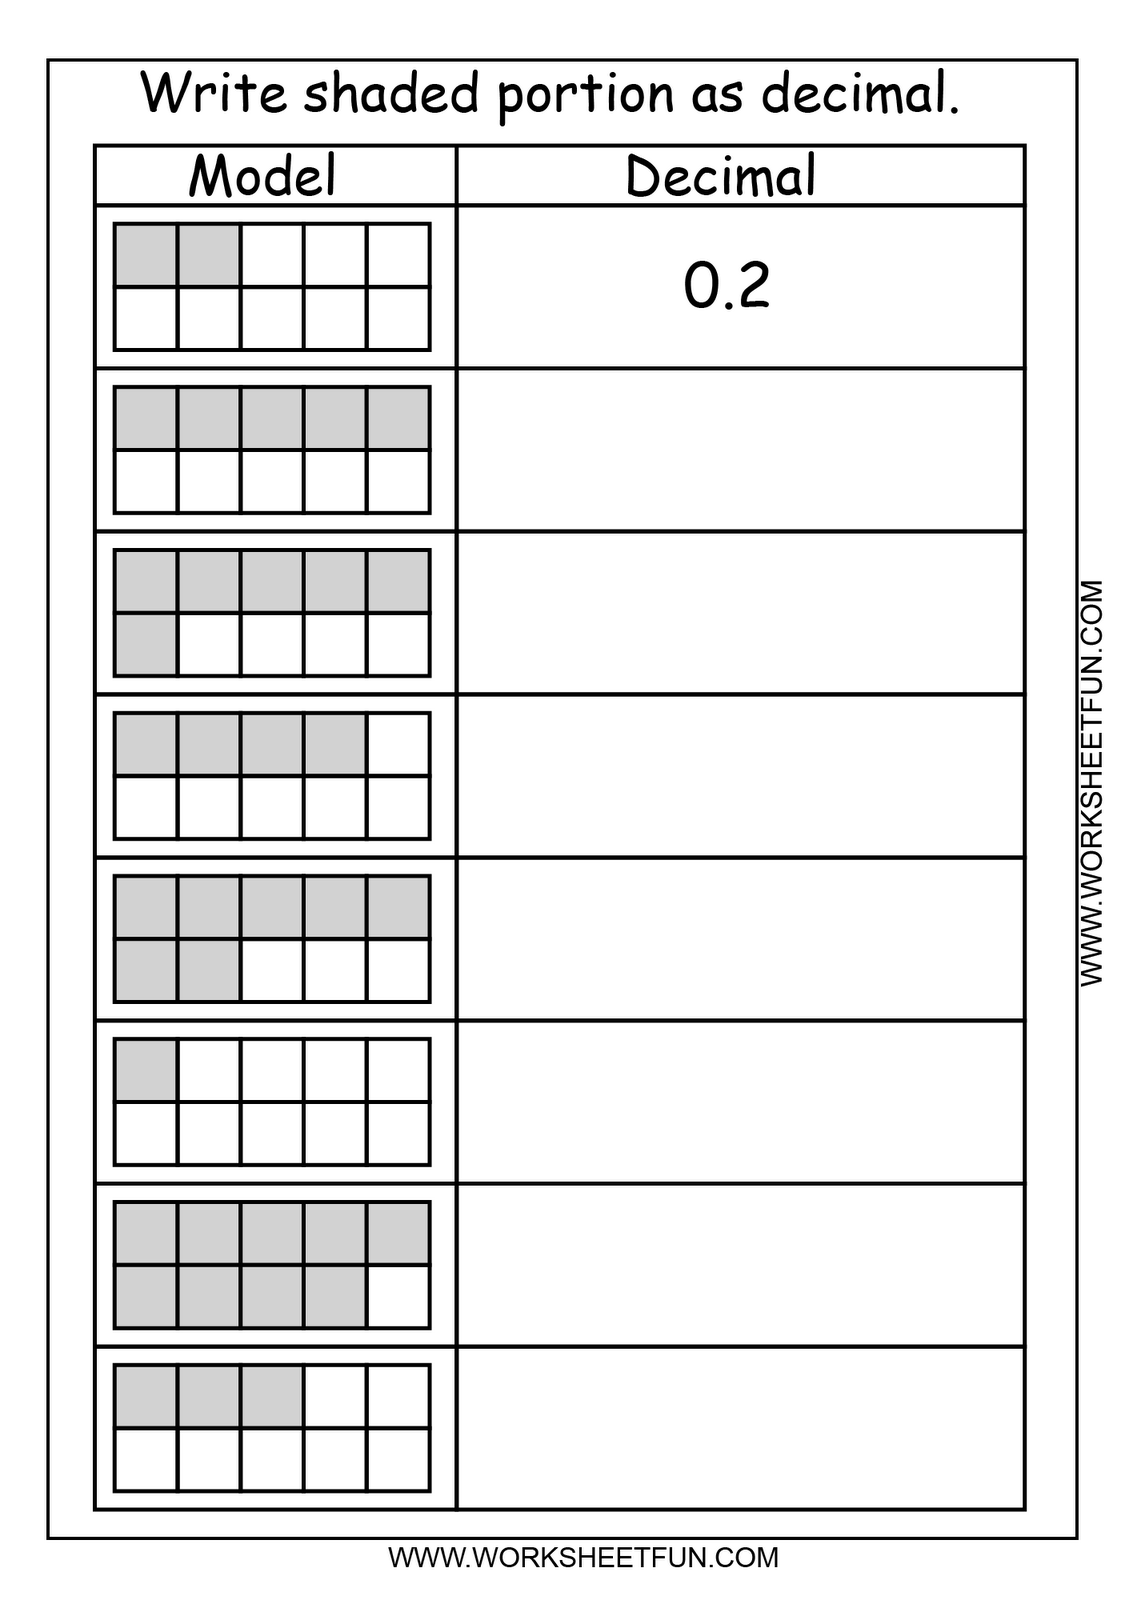 hight resolution of Worksheetfun - FREE PRINTABLE WORKSHEETS   Fractions worksheets